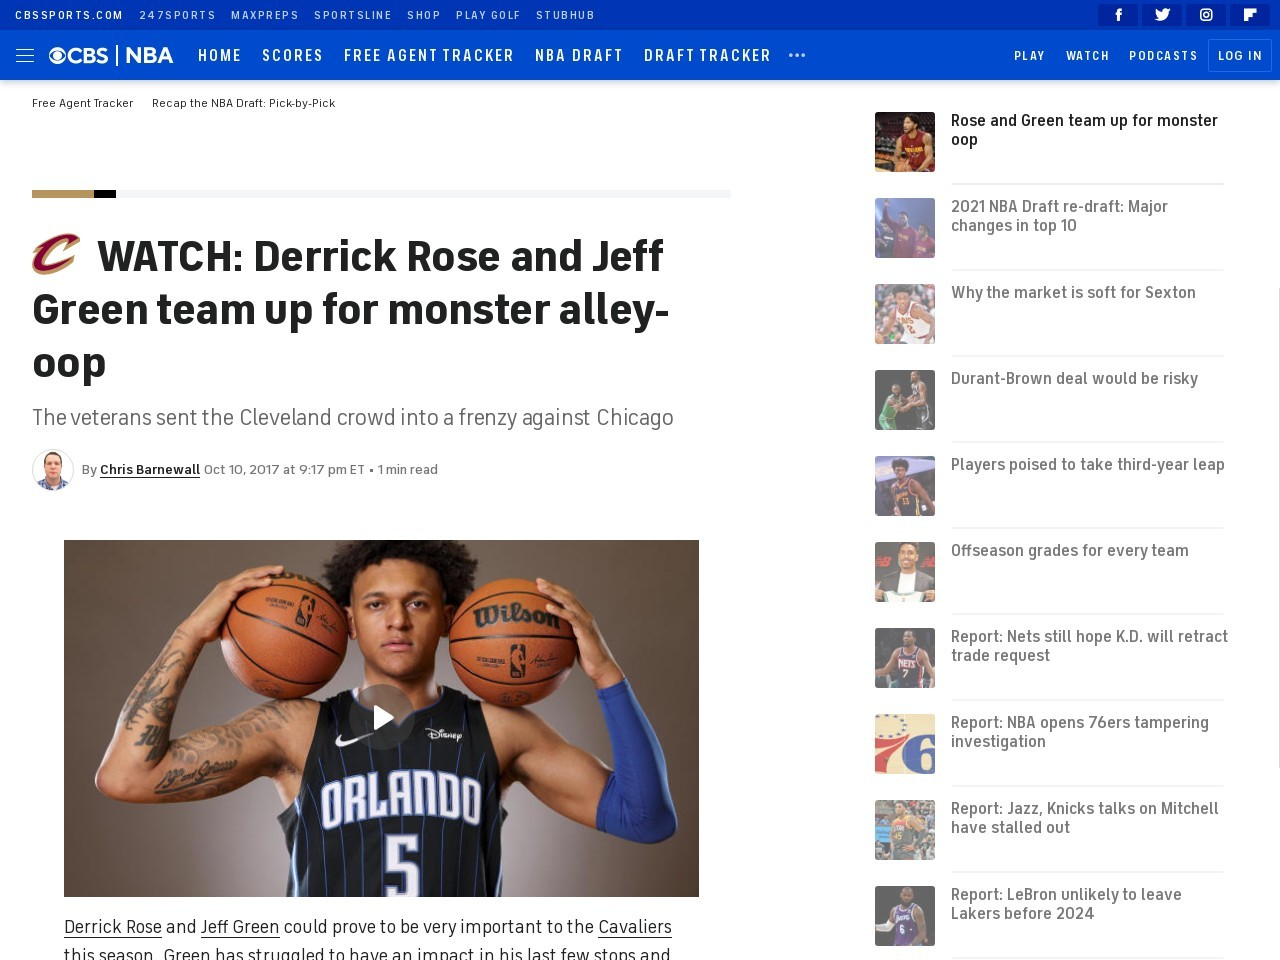 WATCH: Derrick Rose and Jeff Green team up for monster alley-oop